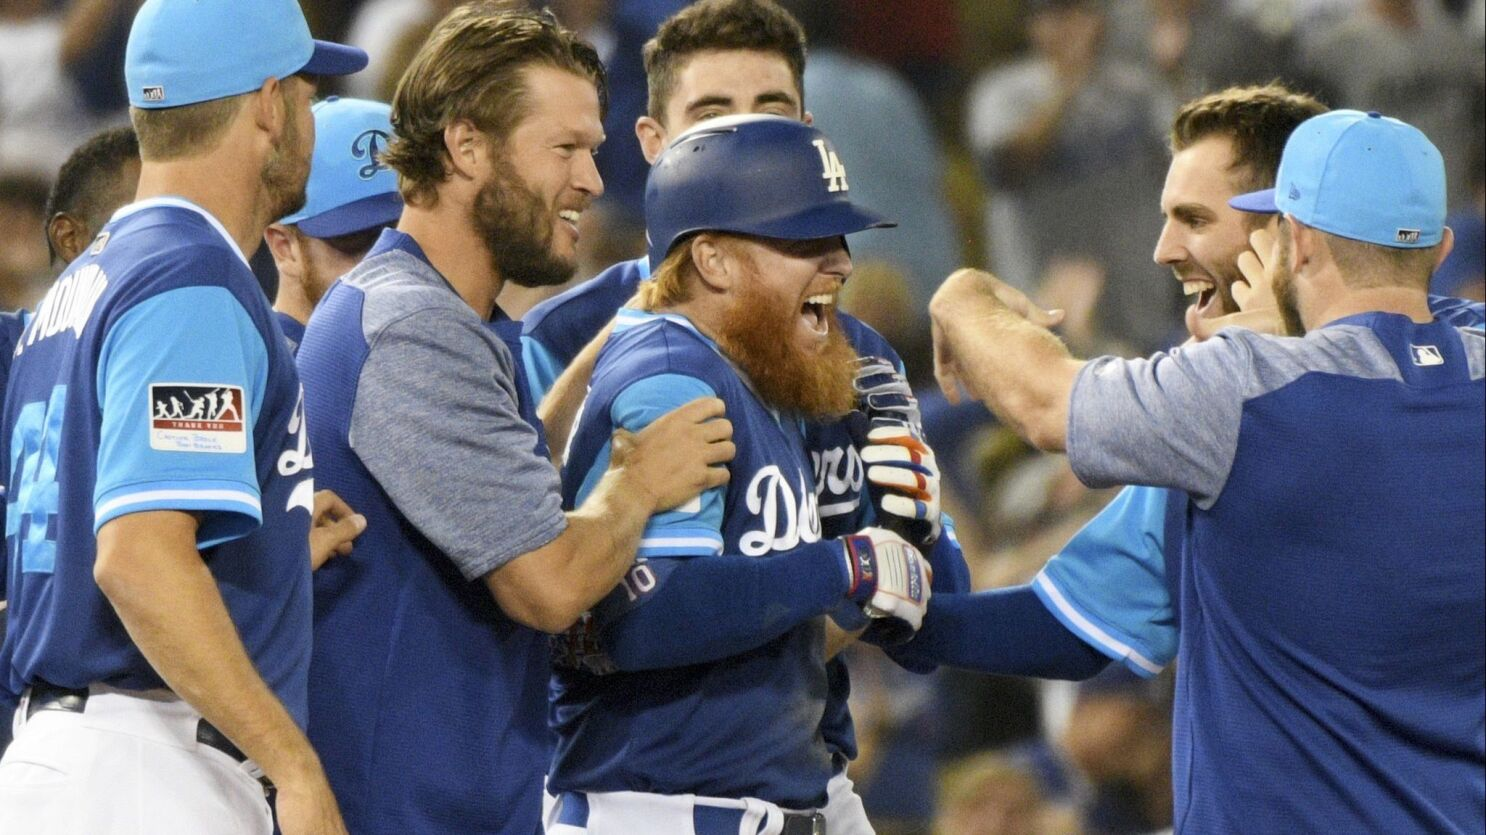 innovative design 1121d 3d48a Lights go out, then Dodgers walk-off a win over Padres - The San Diego  Union-Tribune